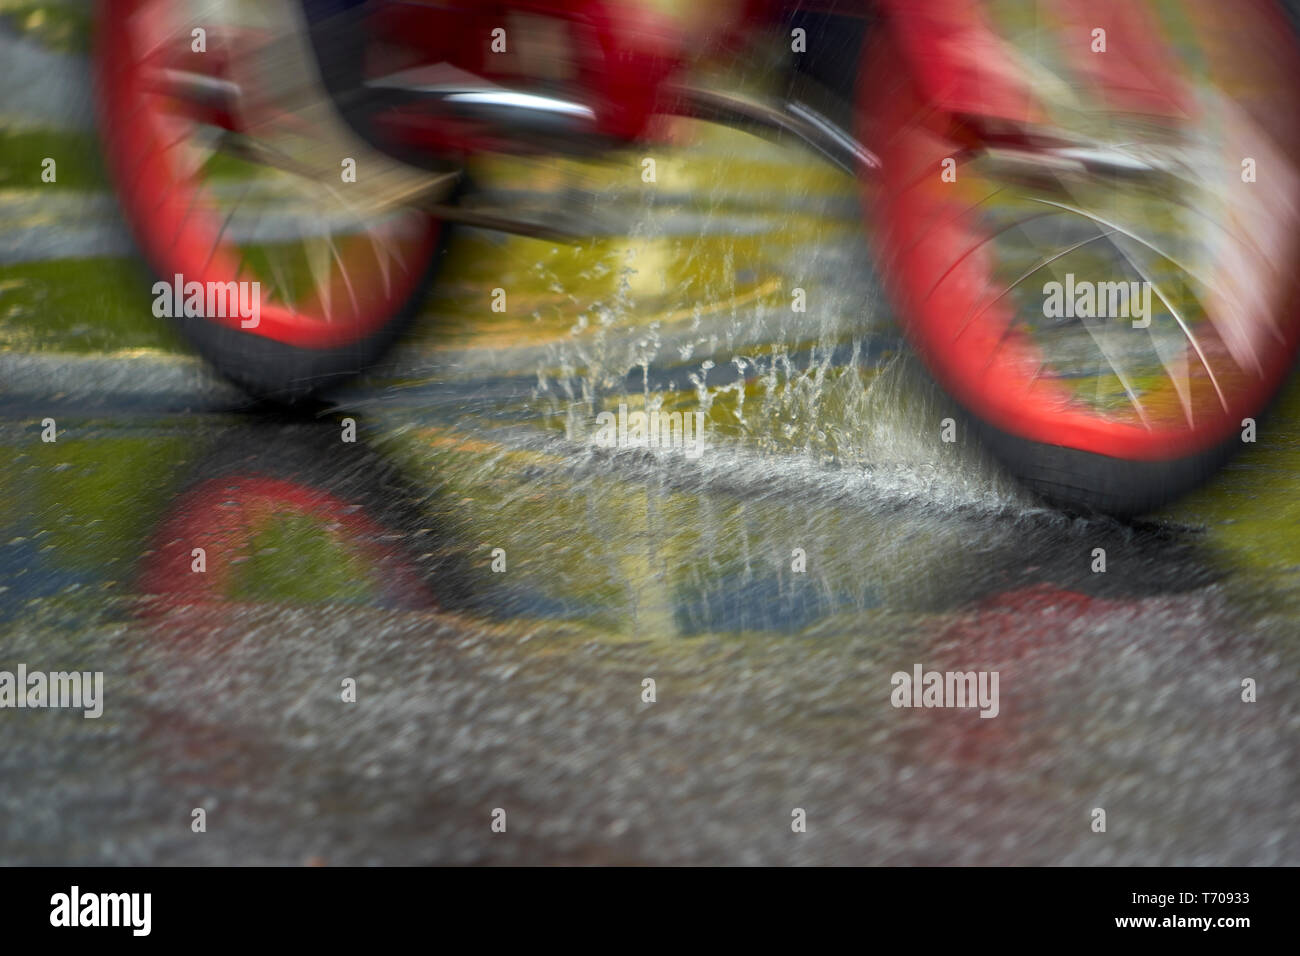 a-kid-rides-bike-on-street-pavement-through-rain-puddle-T70933.jpg